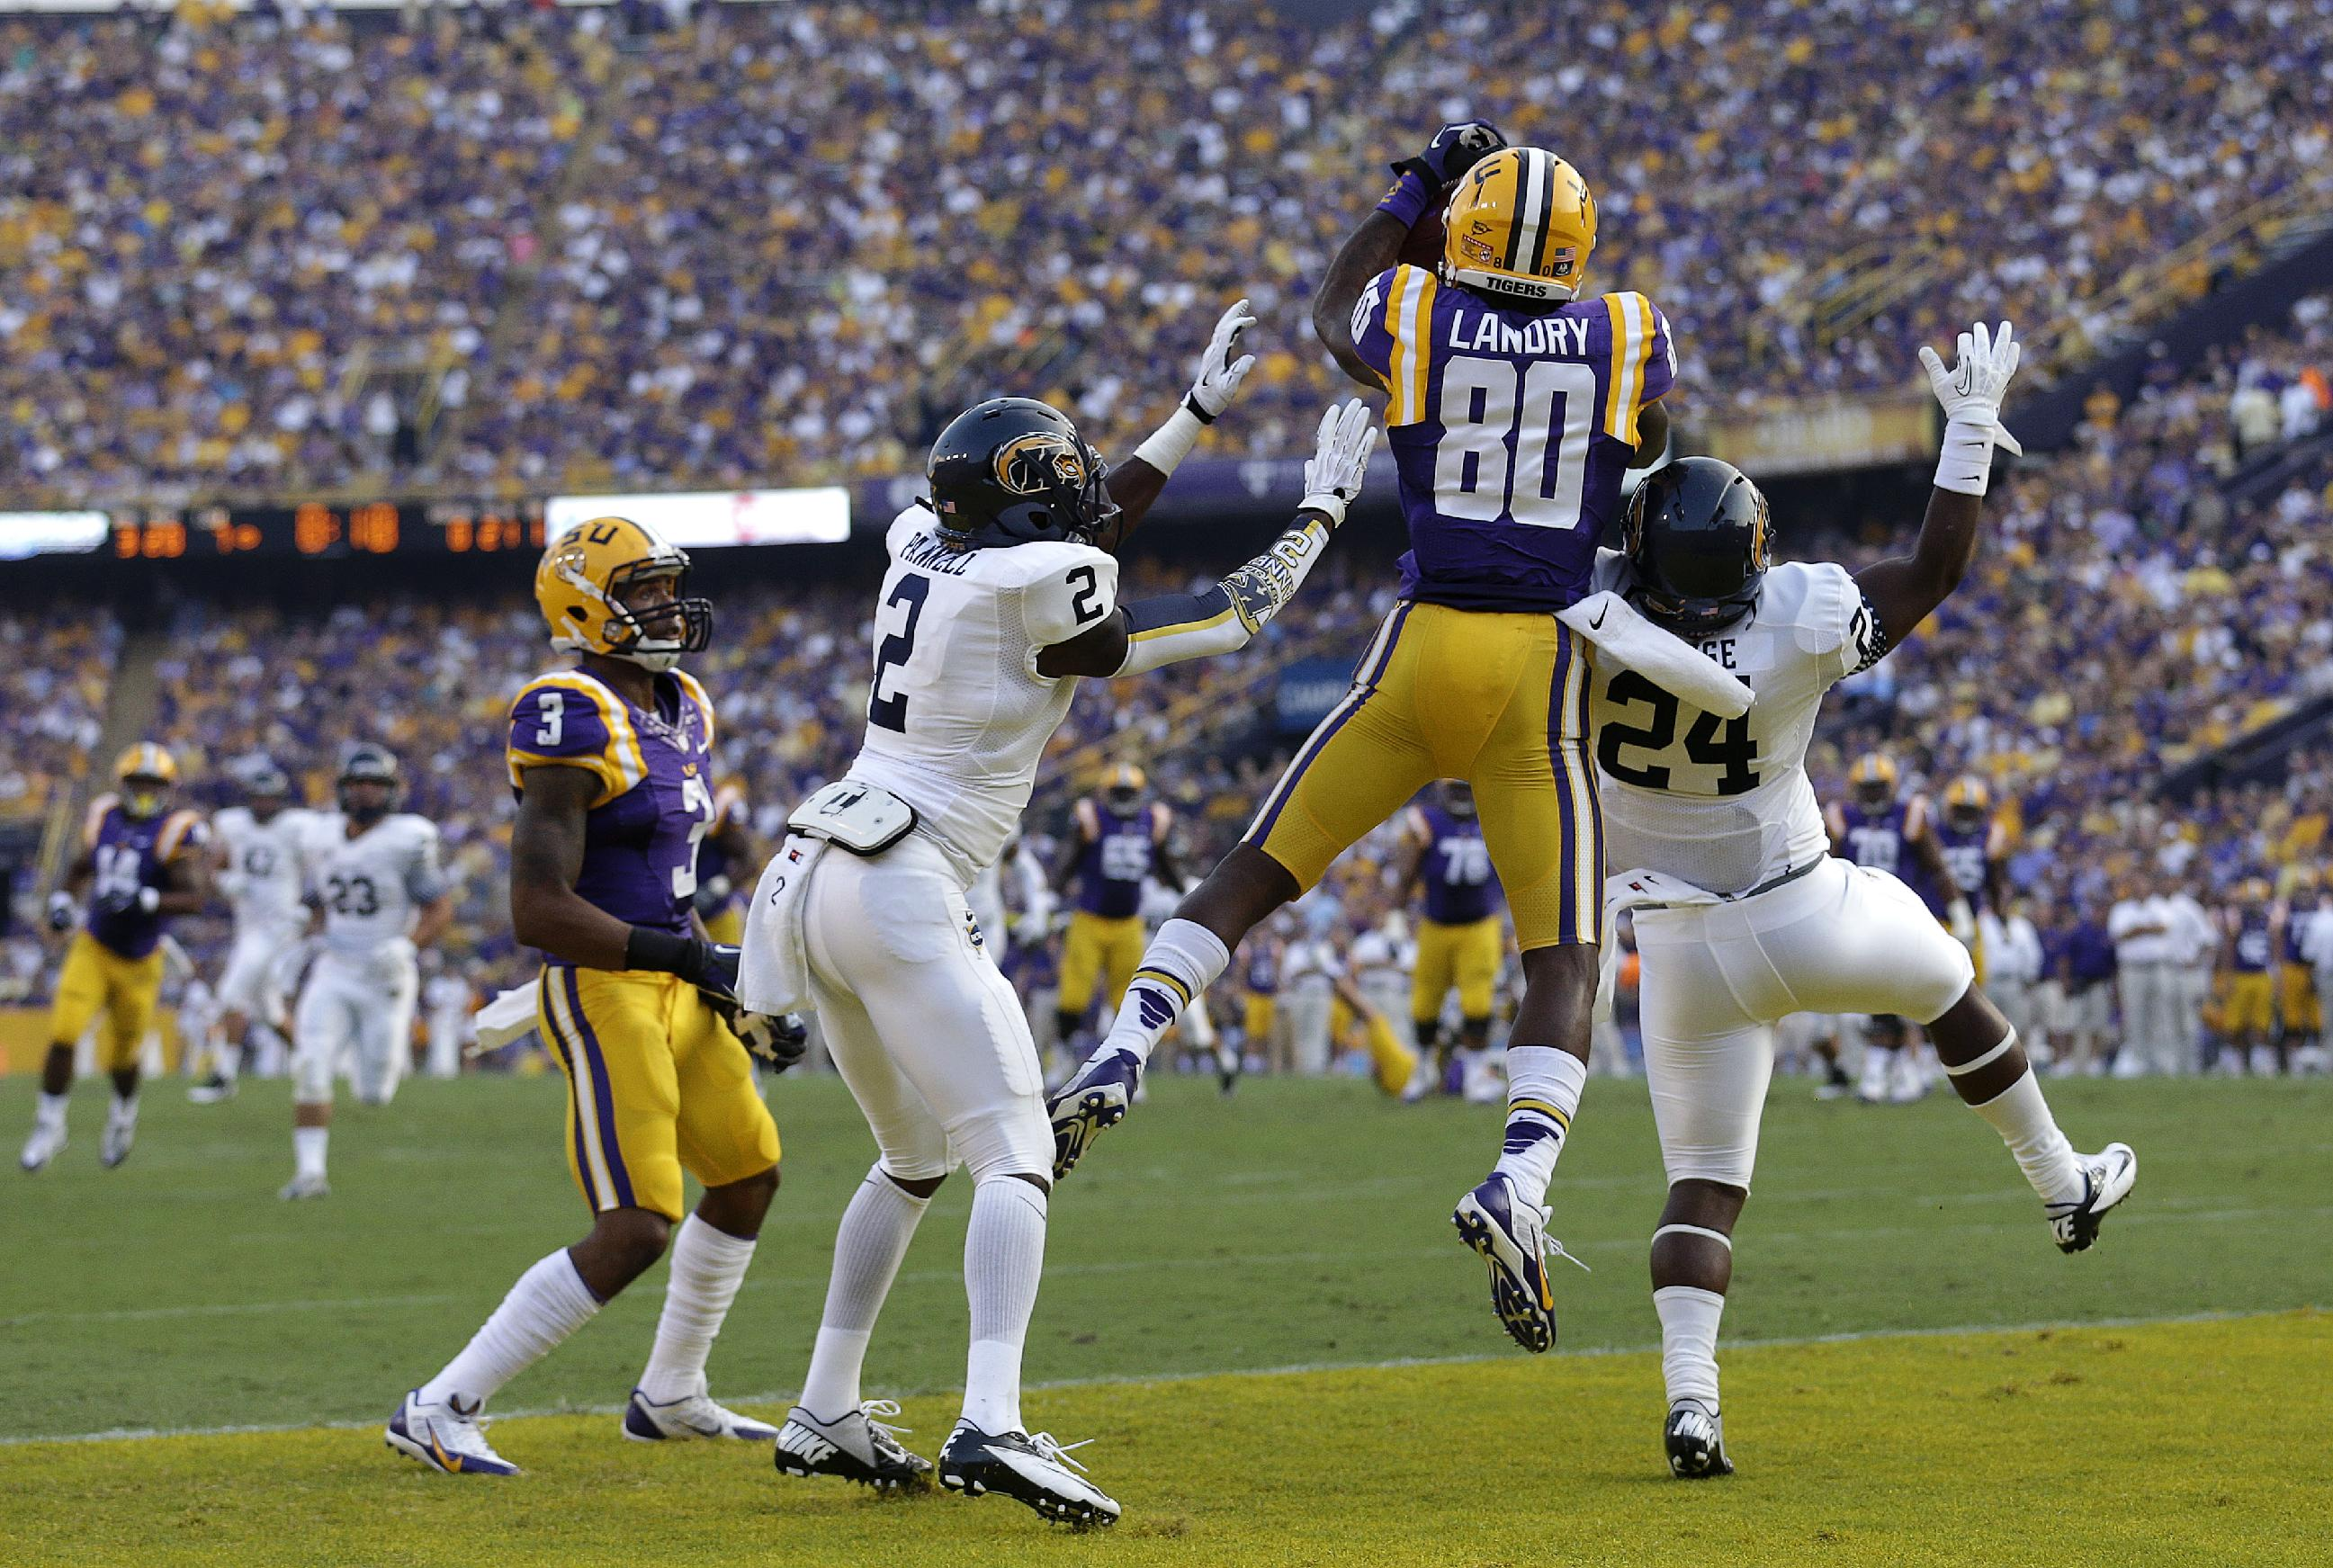 LSU has ridden dynamic offense to No. 6 in poll